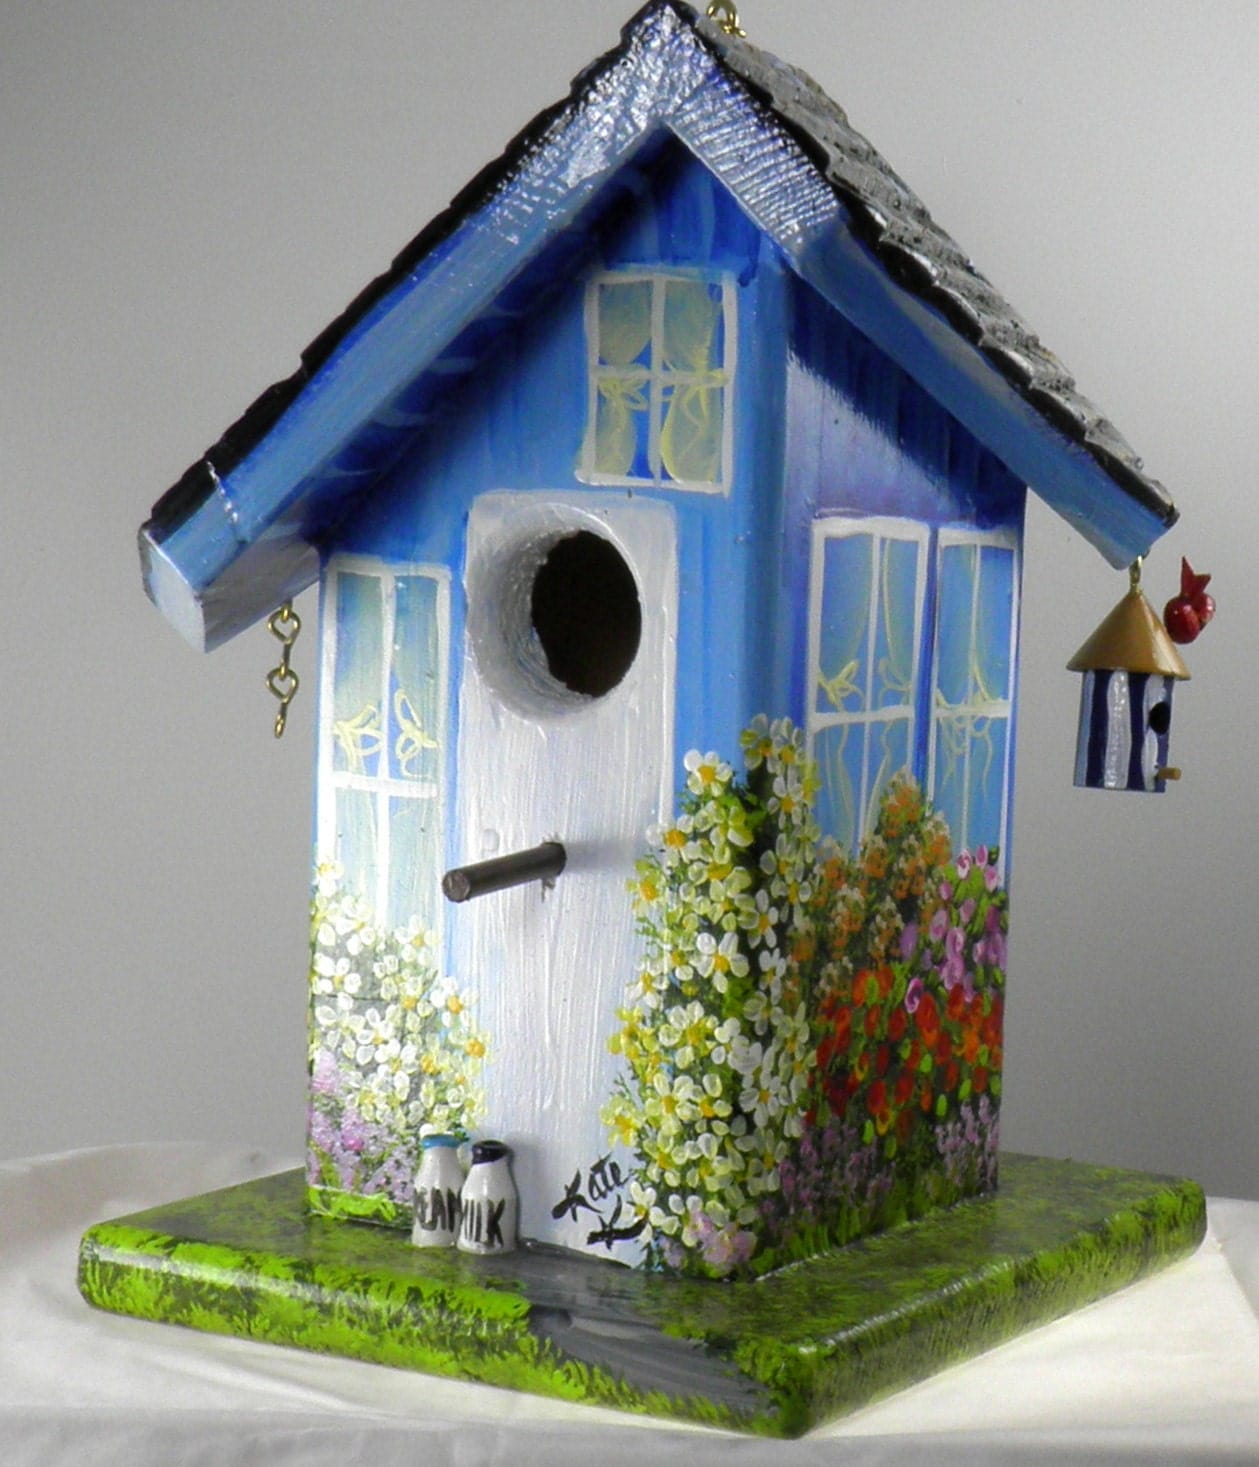 il_fullxfull.374613999_ik70 Painted Bird Houses Designs Ideas on home office design ideas, painted bird house craft, painted wood bird house, painted bird house with cat, computer nerd gift ideas, painted wood craft ideas, painted dresser ideas, pet cool house ideas, painted furniture, painted red and white bird, painted owl bird house, jewelry designs ideas, painted bird house roof, painted decorative bird houses designs, painted gingerbread house craft,